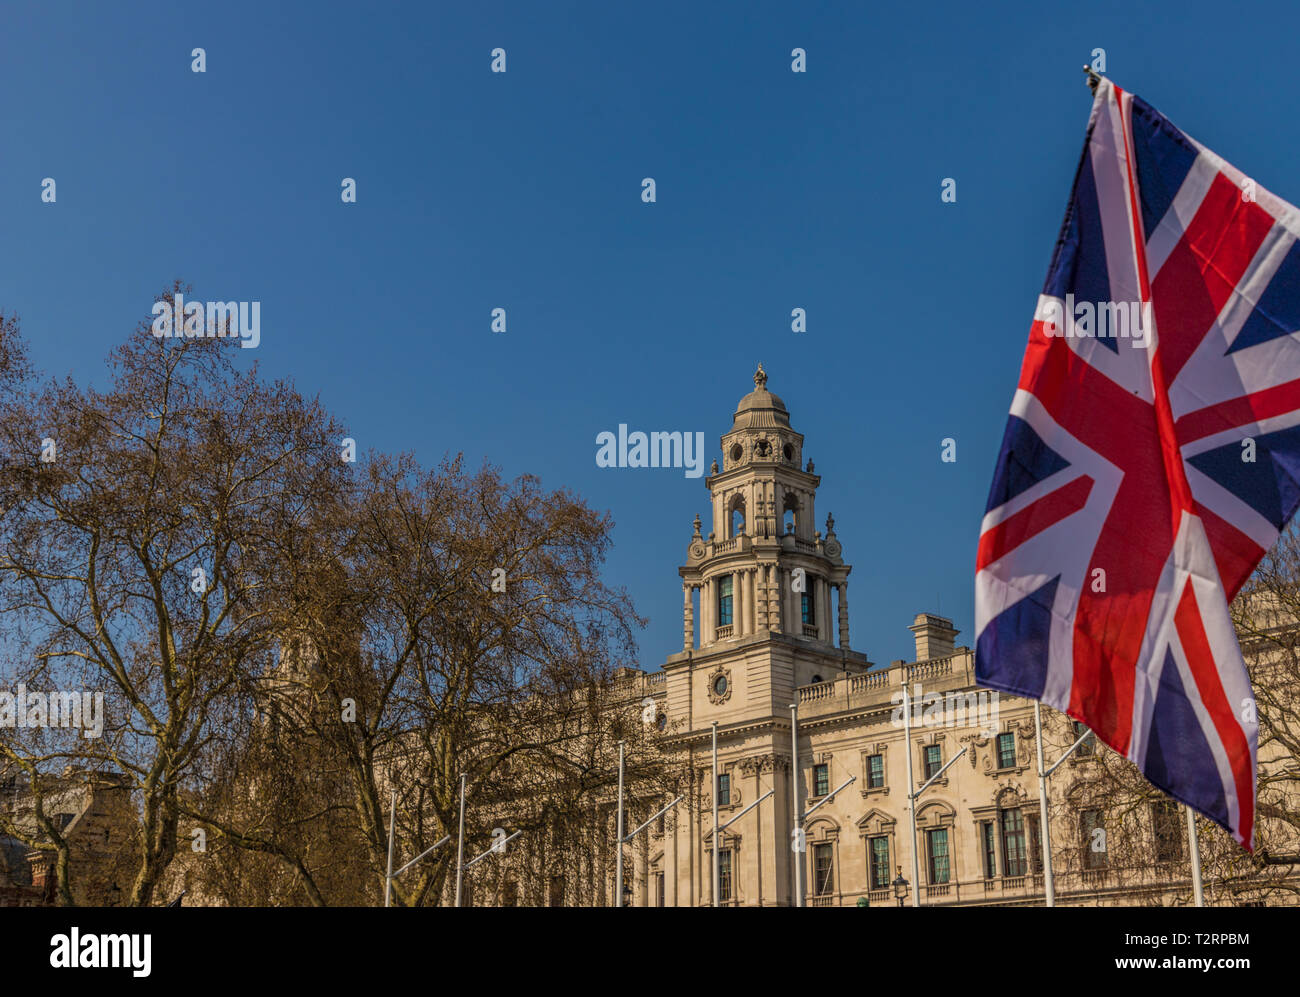 March 29 2019. London. Union flags flying by parliament in parliament square London - Stock Image